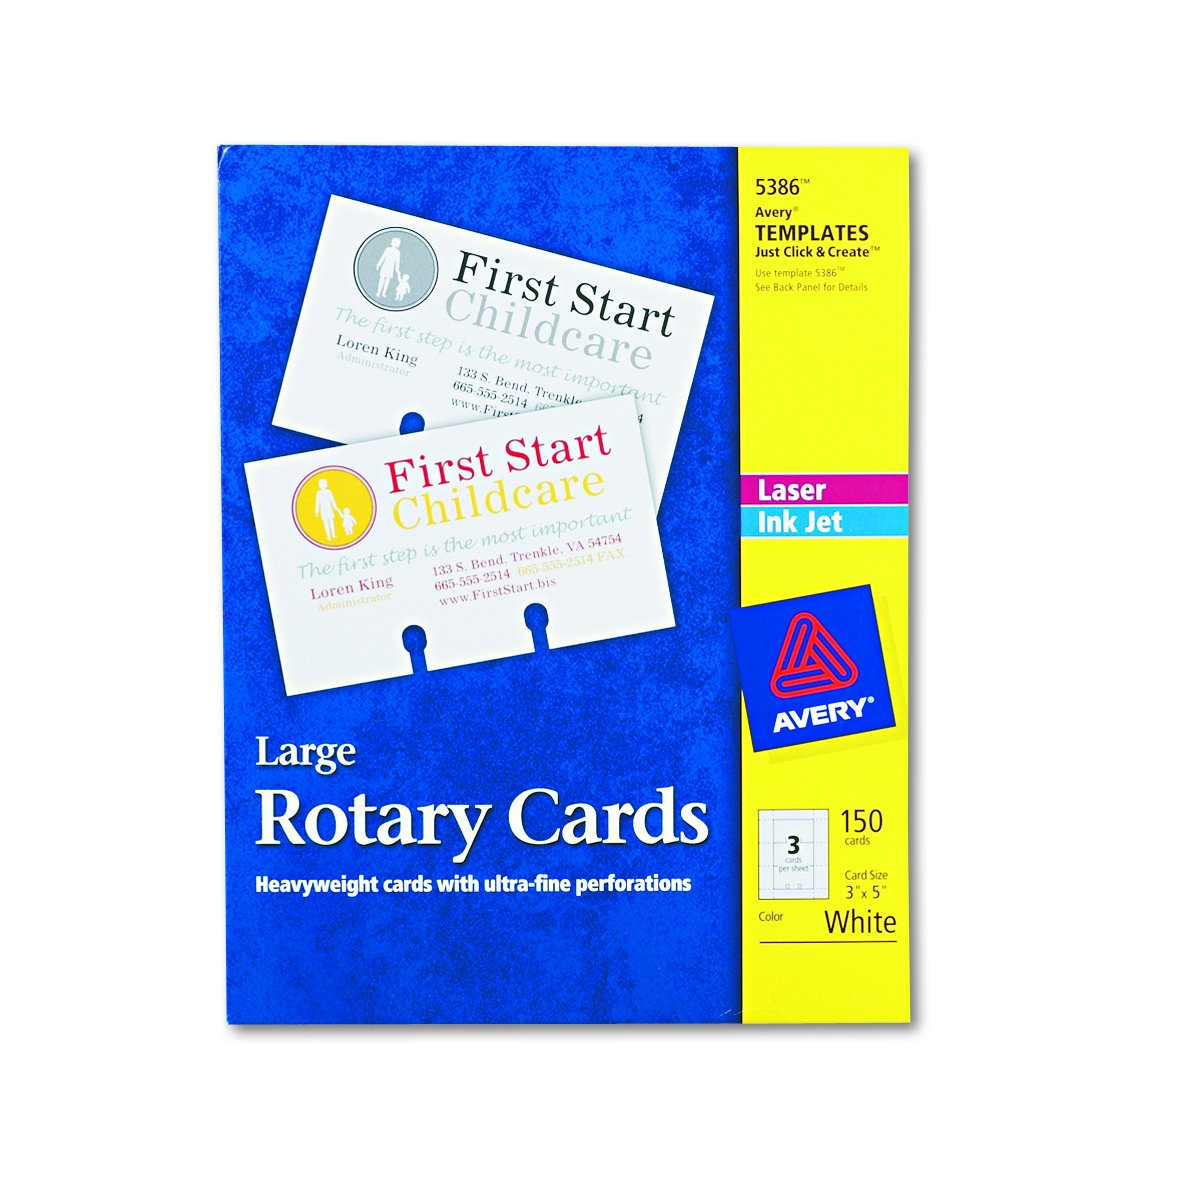 Amazon.com : Avery Rotary Cards, Laser and Ink Jet Printers, 3 x 5 ...